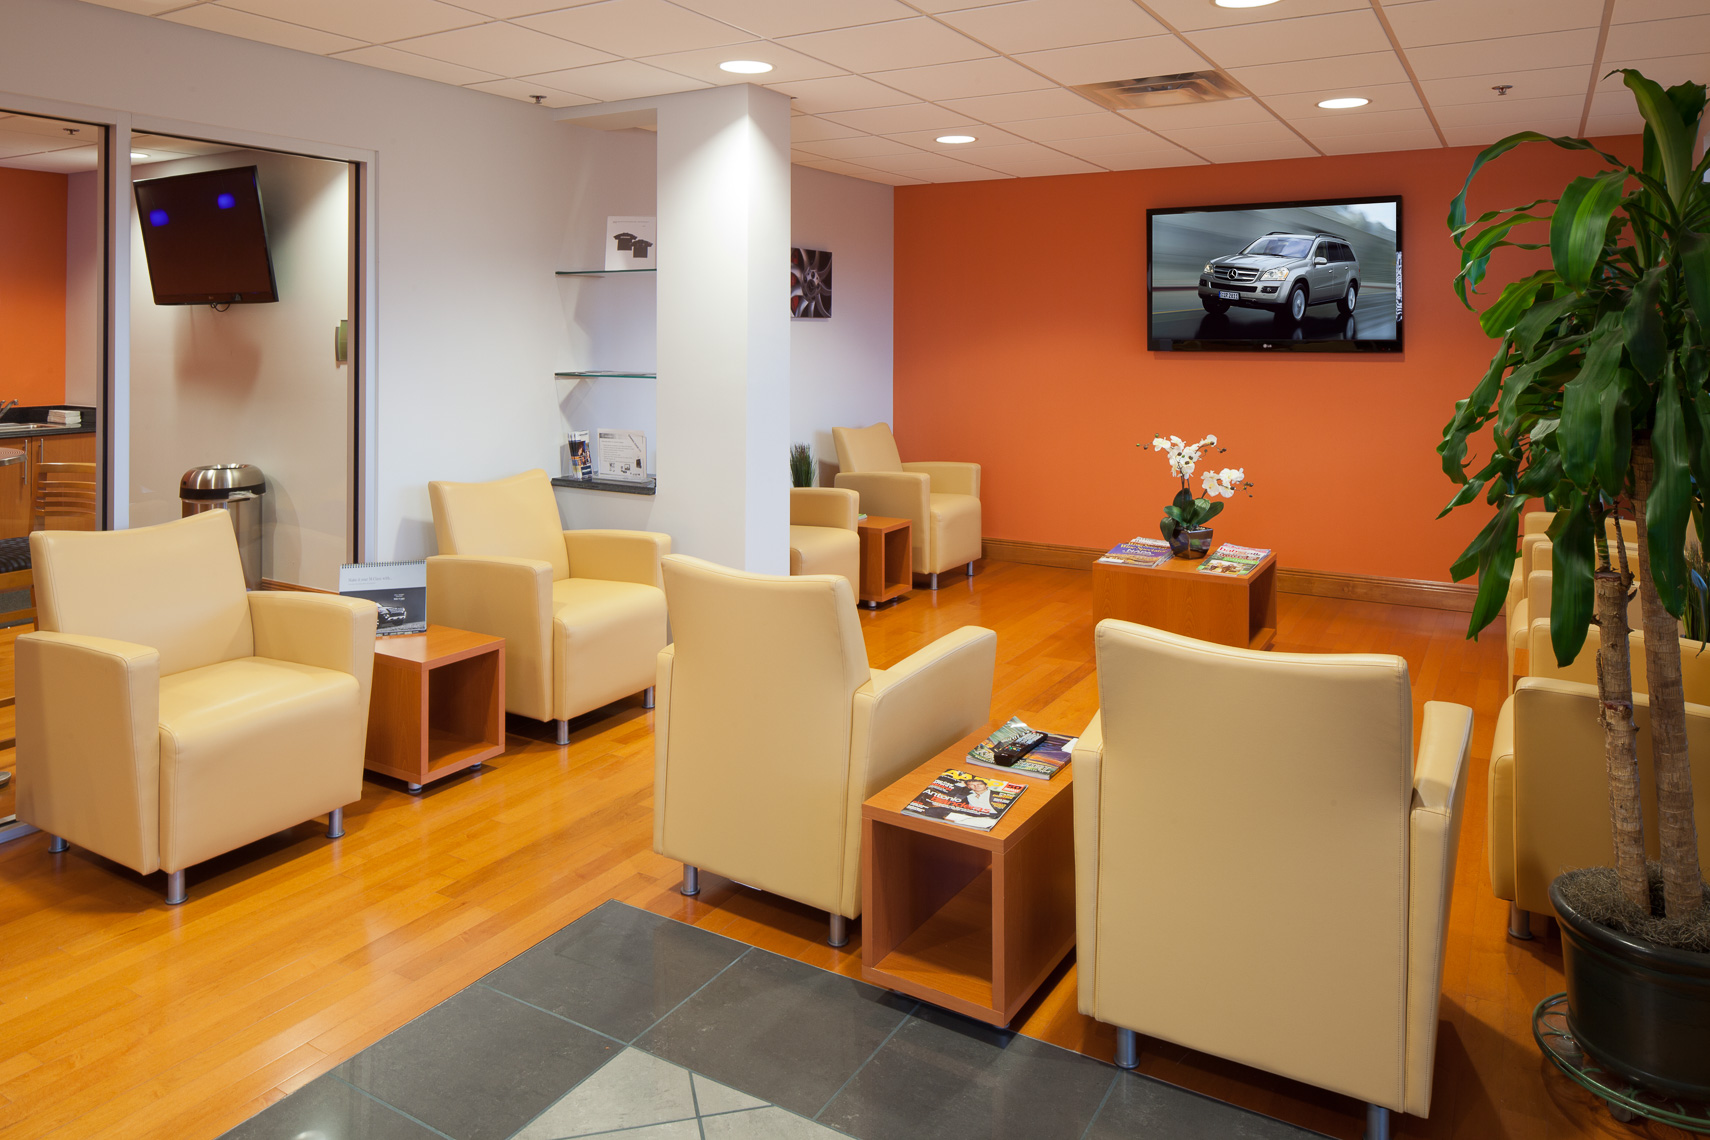 Lokey Mercedes Dealership - Mark Borosch Photography - Clearwater, FL